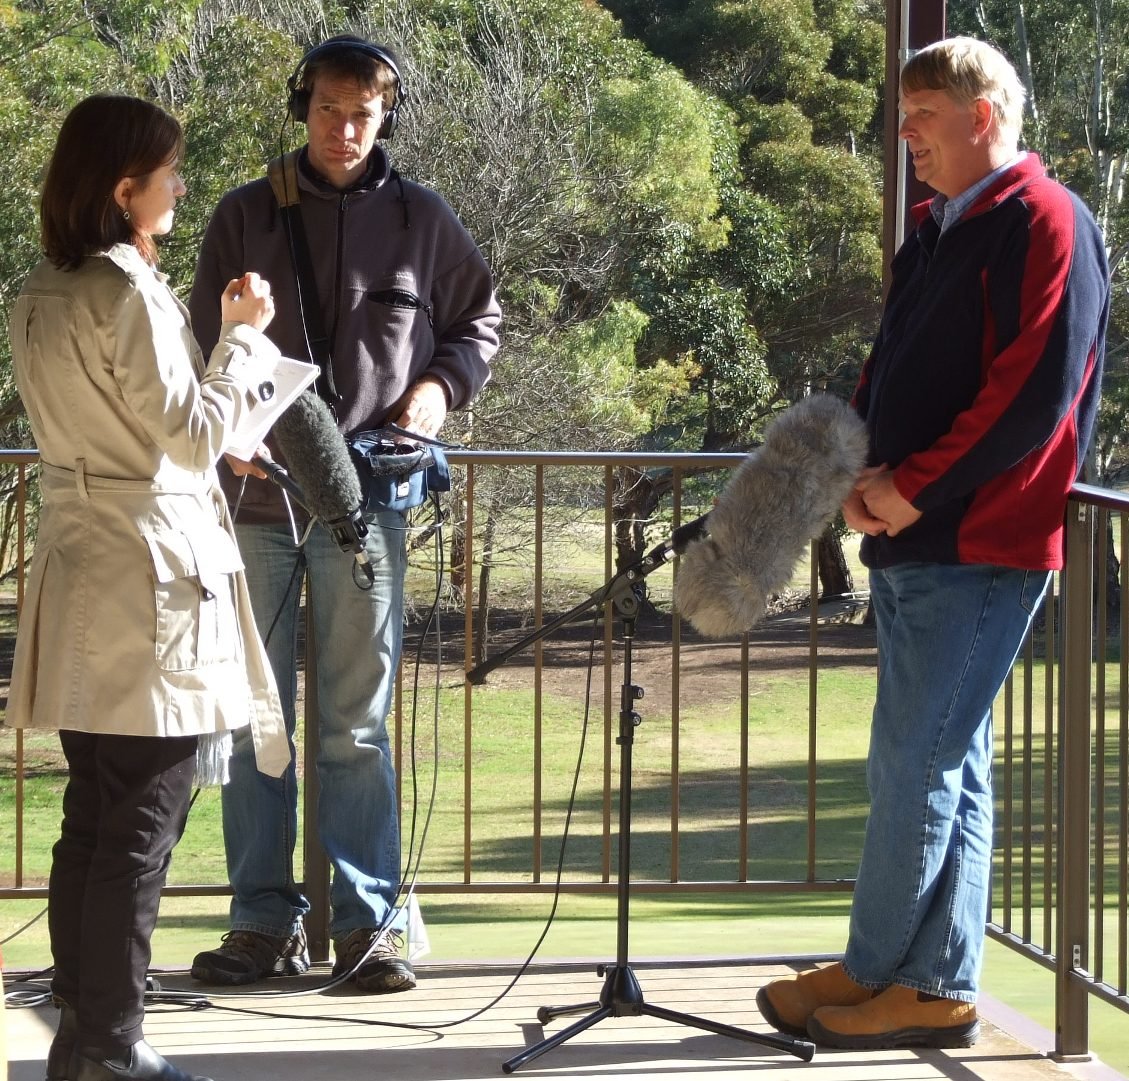 Prue Adams conducts an interview, with cameraman and recording equipment in frame.